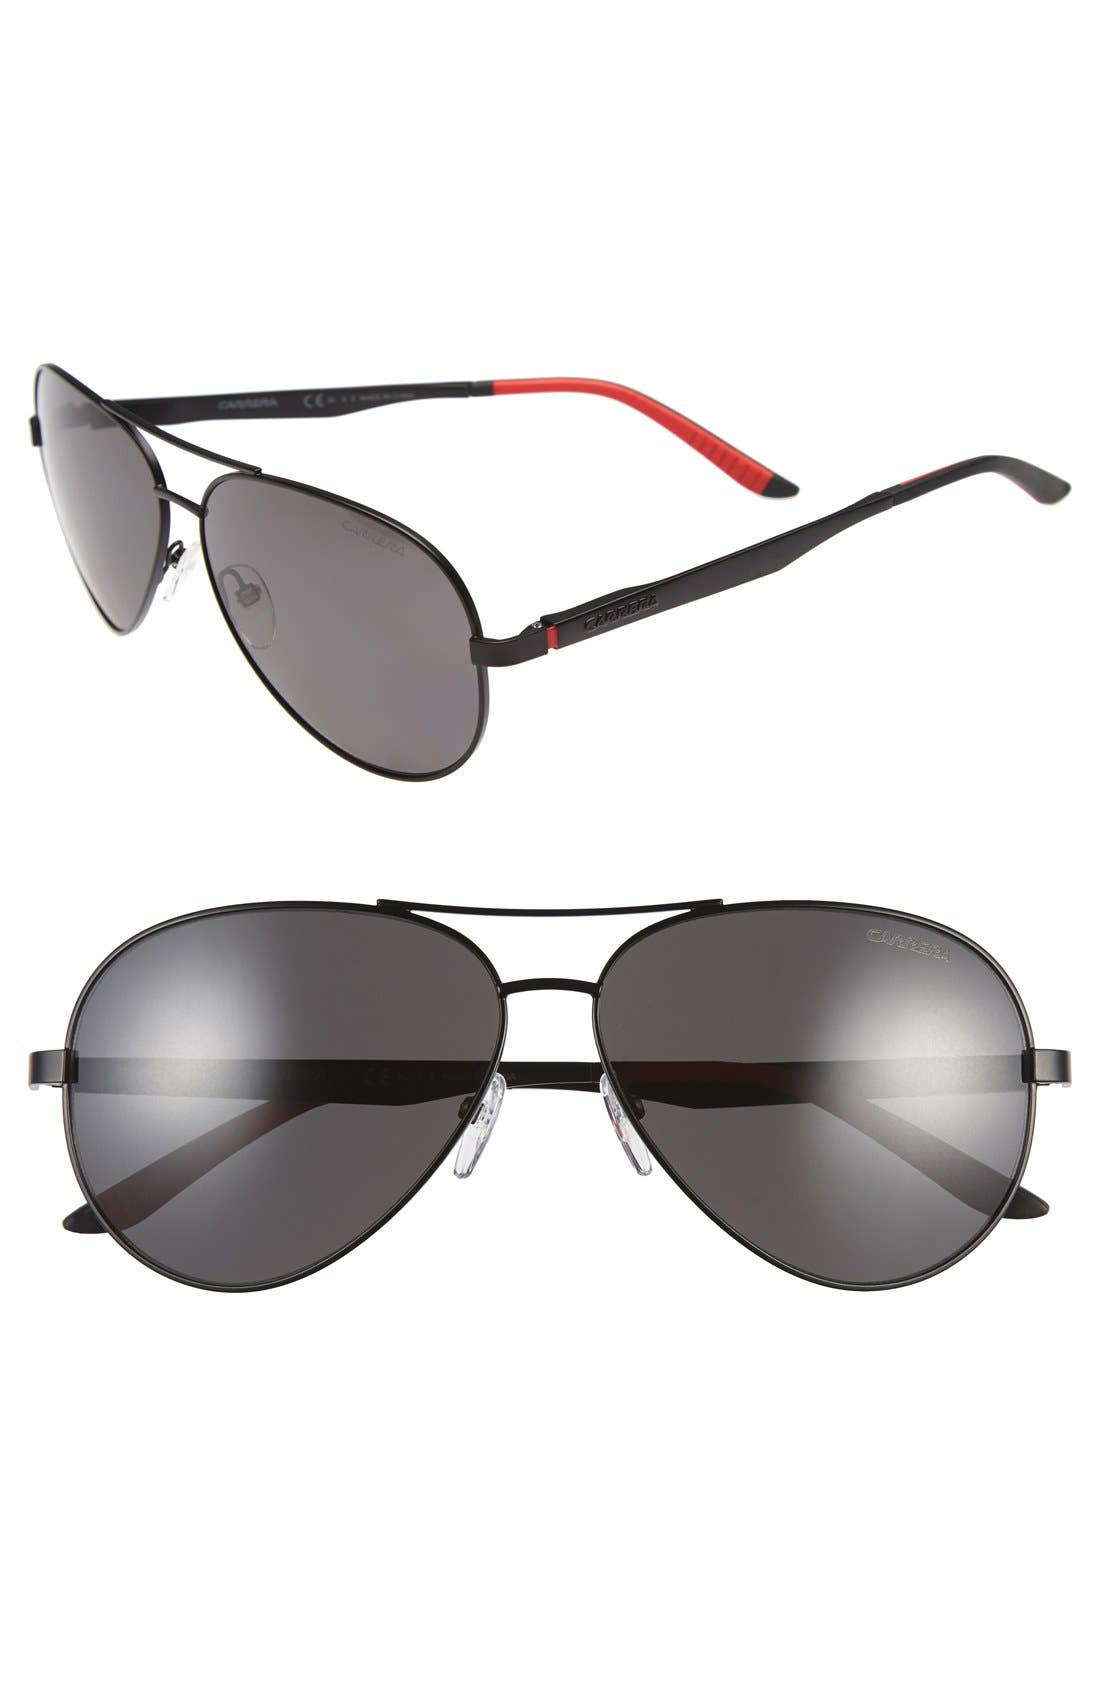 Carrera Eyewear 5m Metal Aviator Sunglasses -